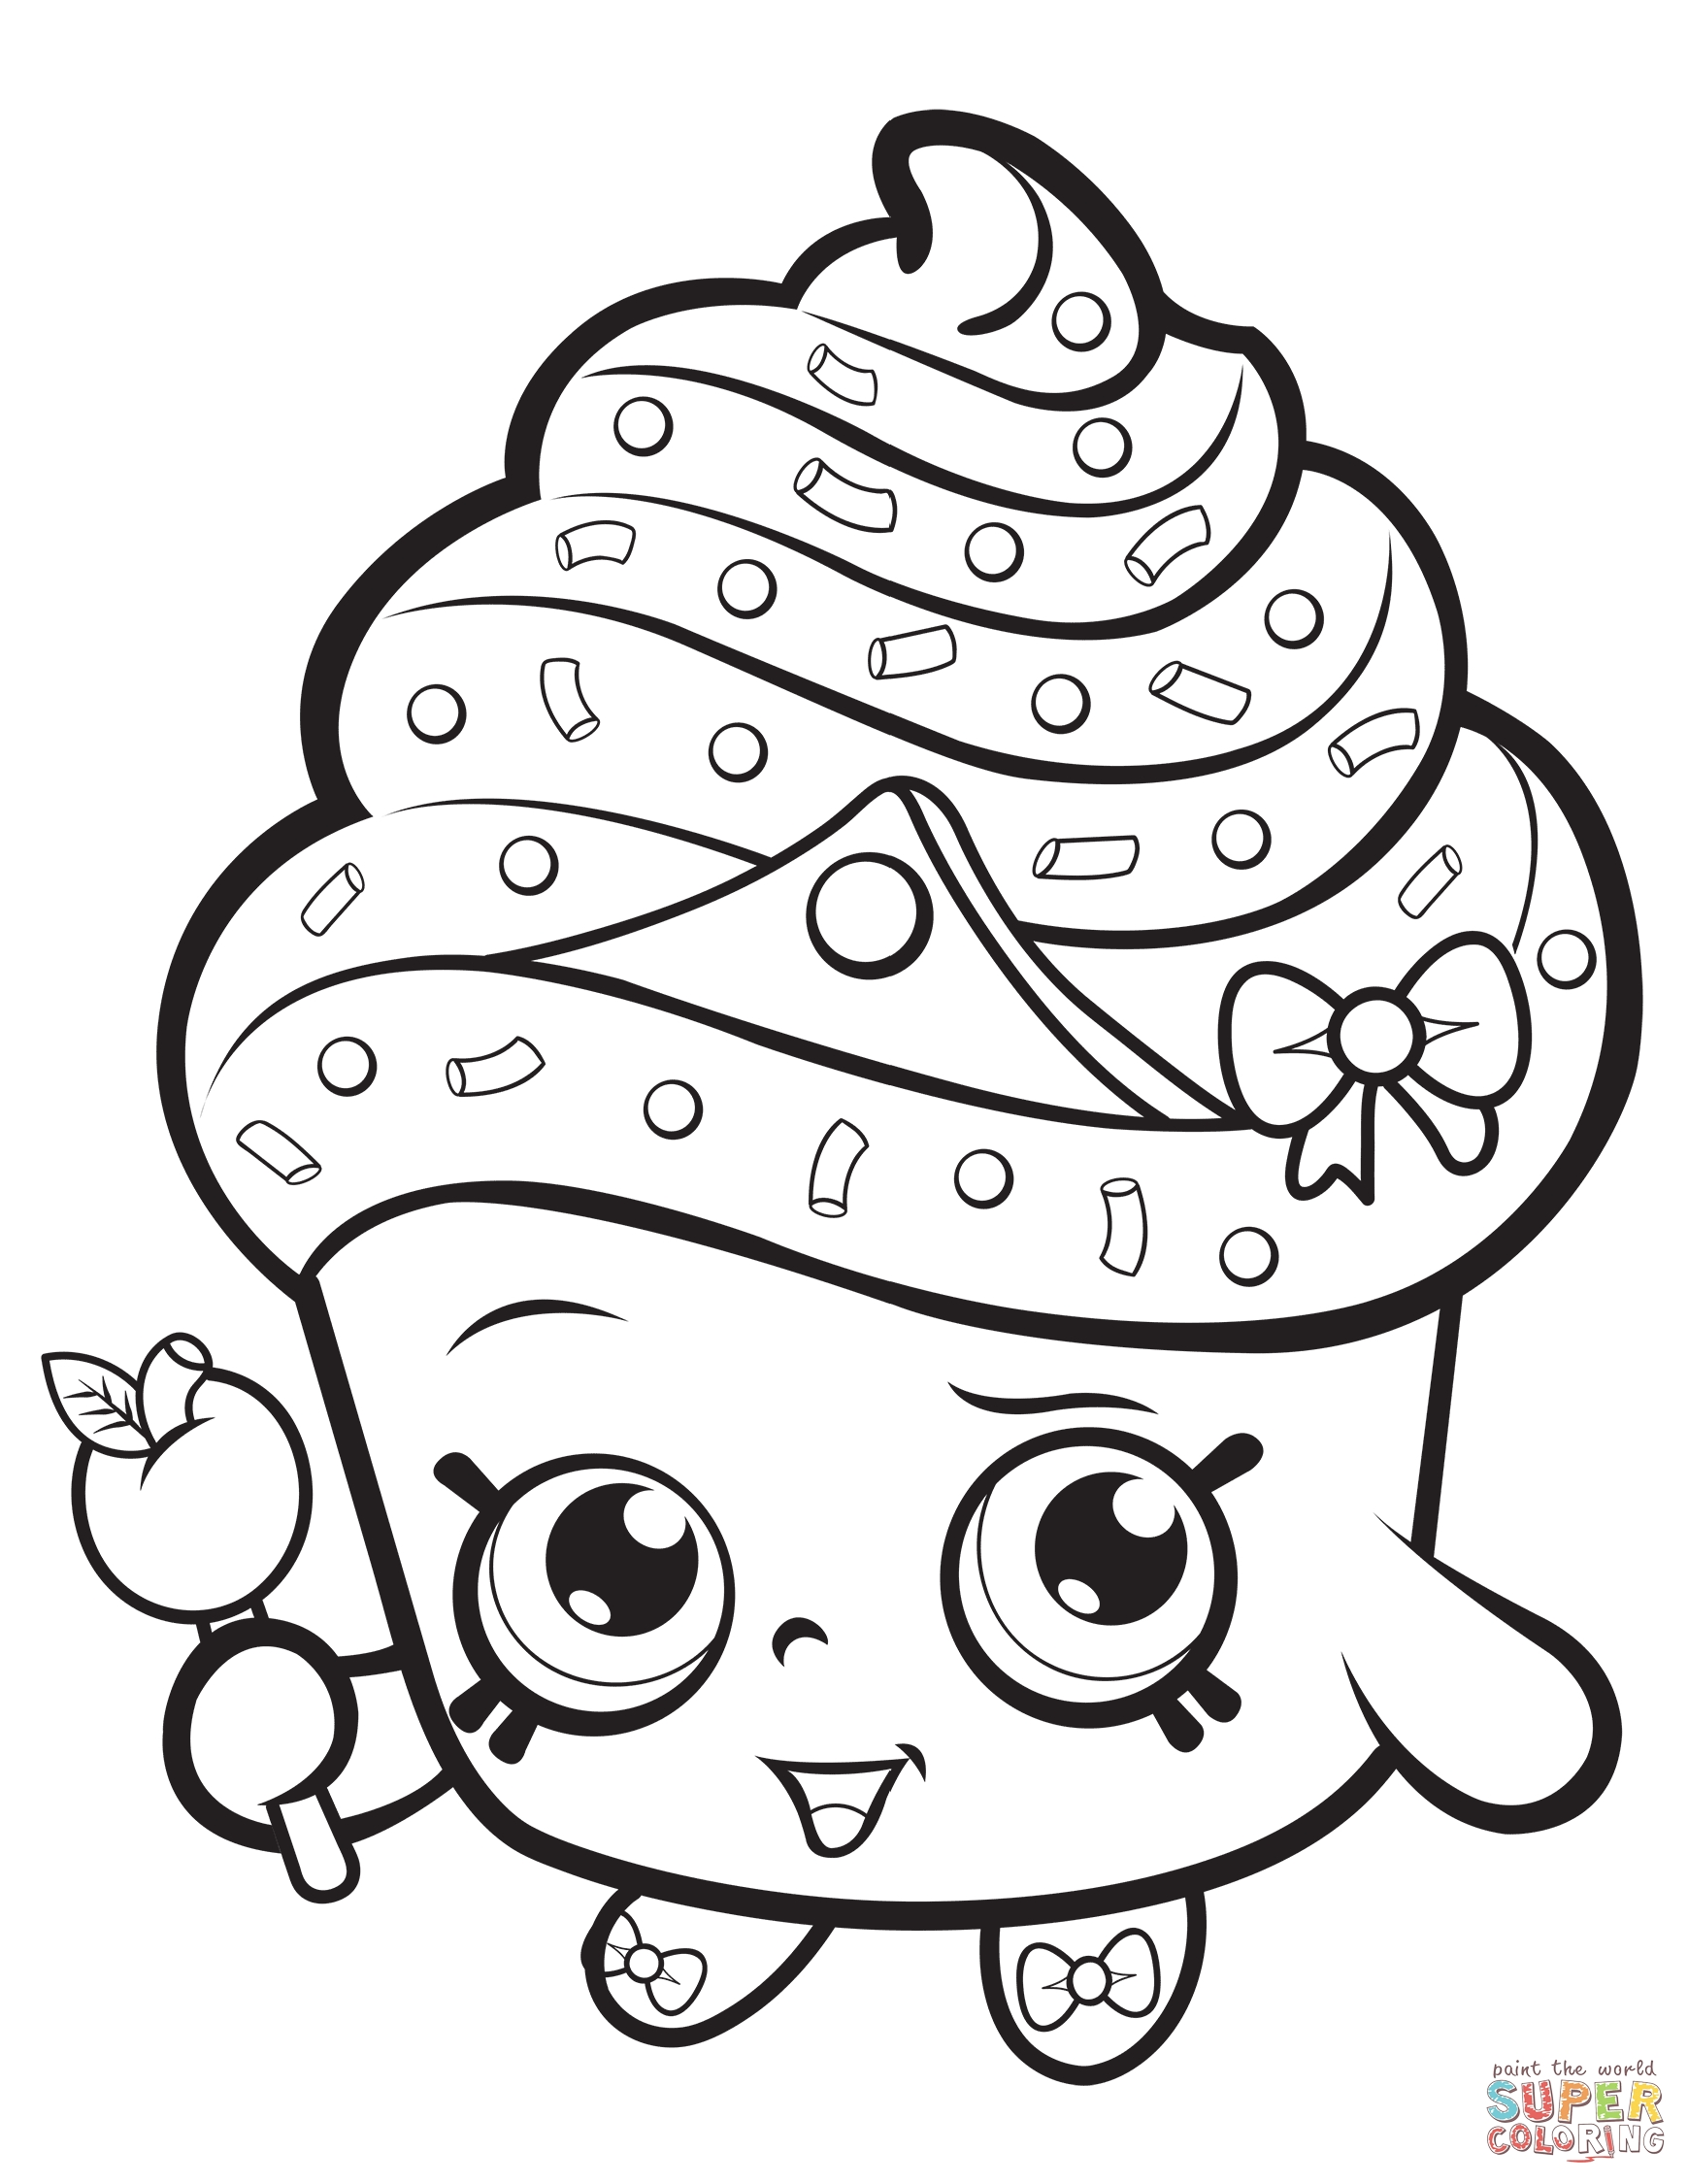 Free Cupcake Coloring Pages At GetDrawings